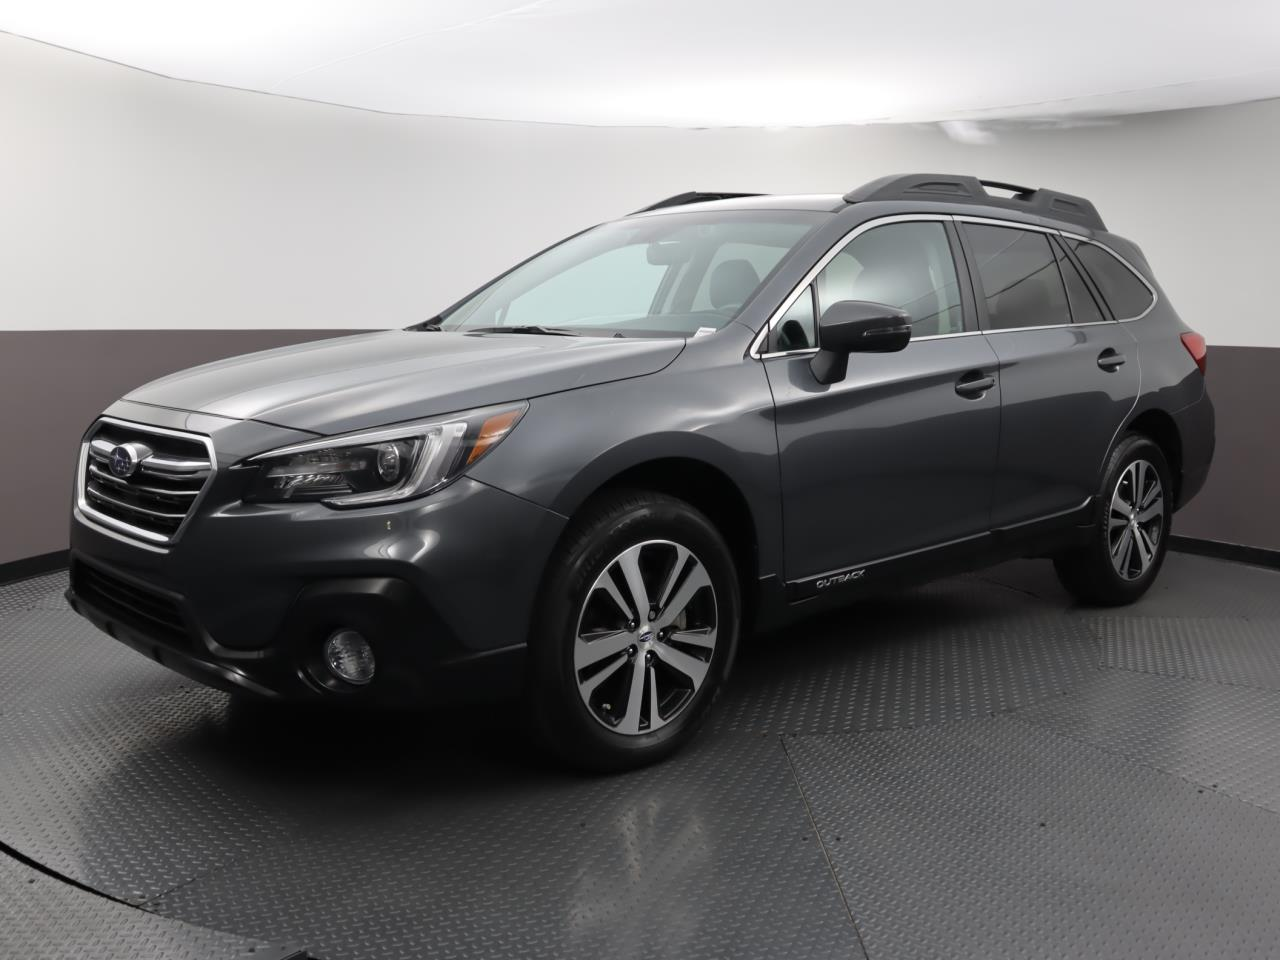 Used SUBARU OUTBACK 2018 WEST PALM LIMITED